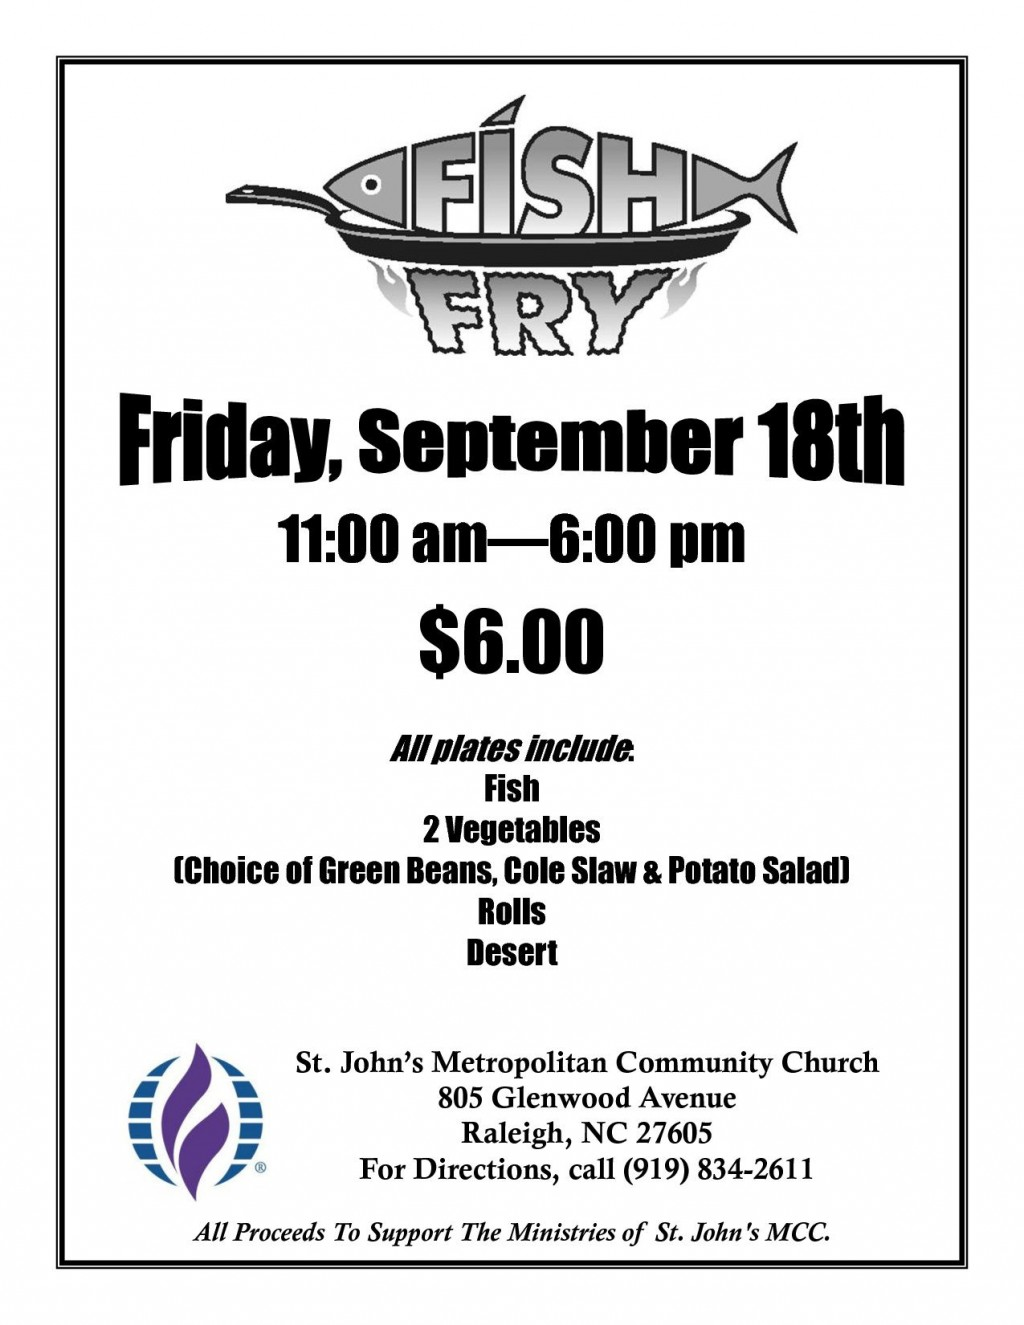 003 Awful Fish Fry Flyer Template Concept  Printable Free Powerpoint PsdLarge